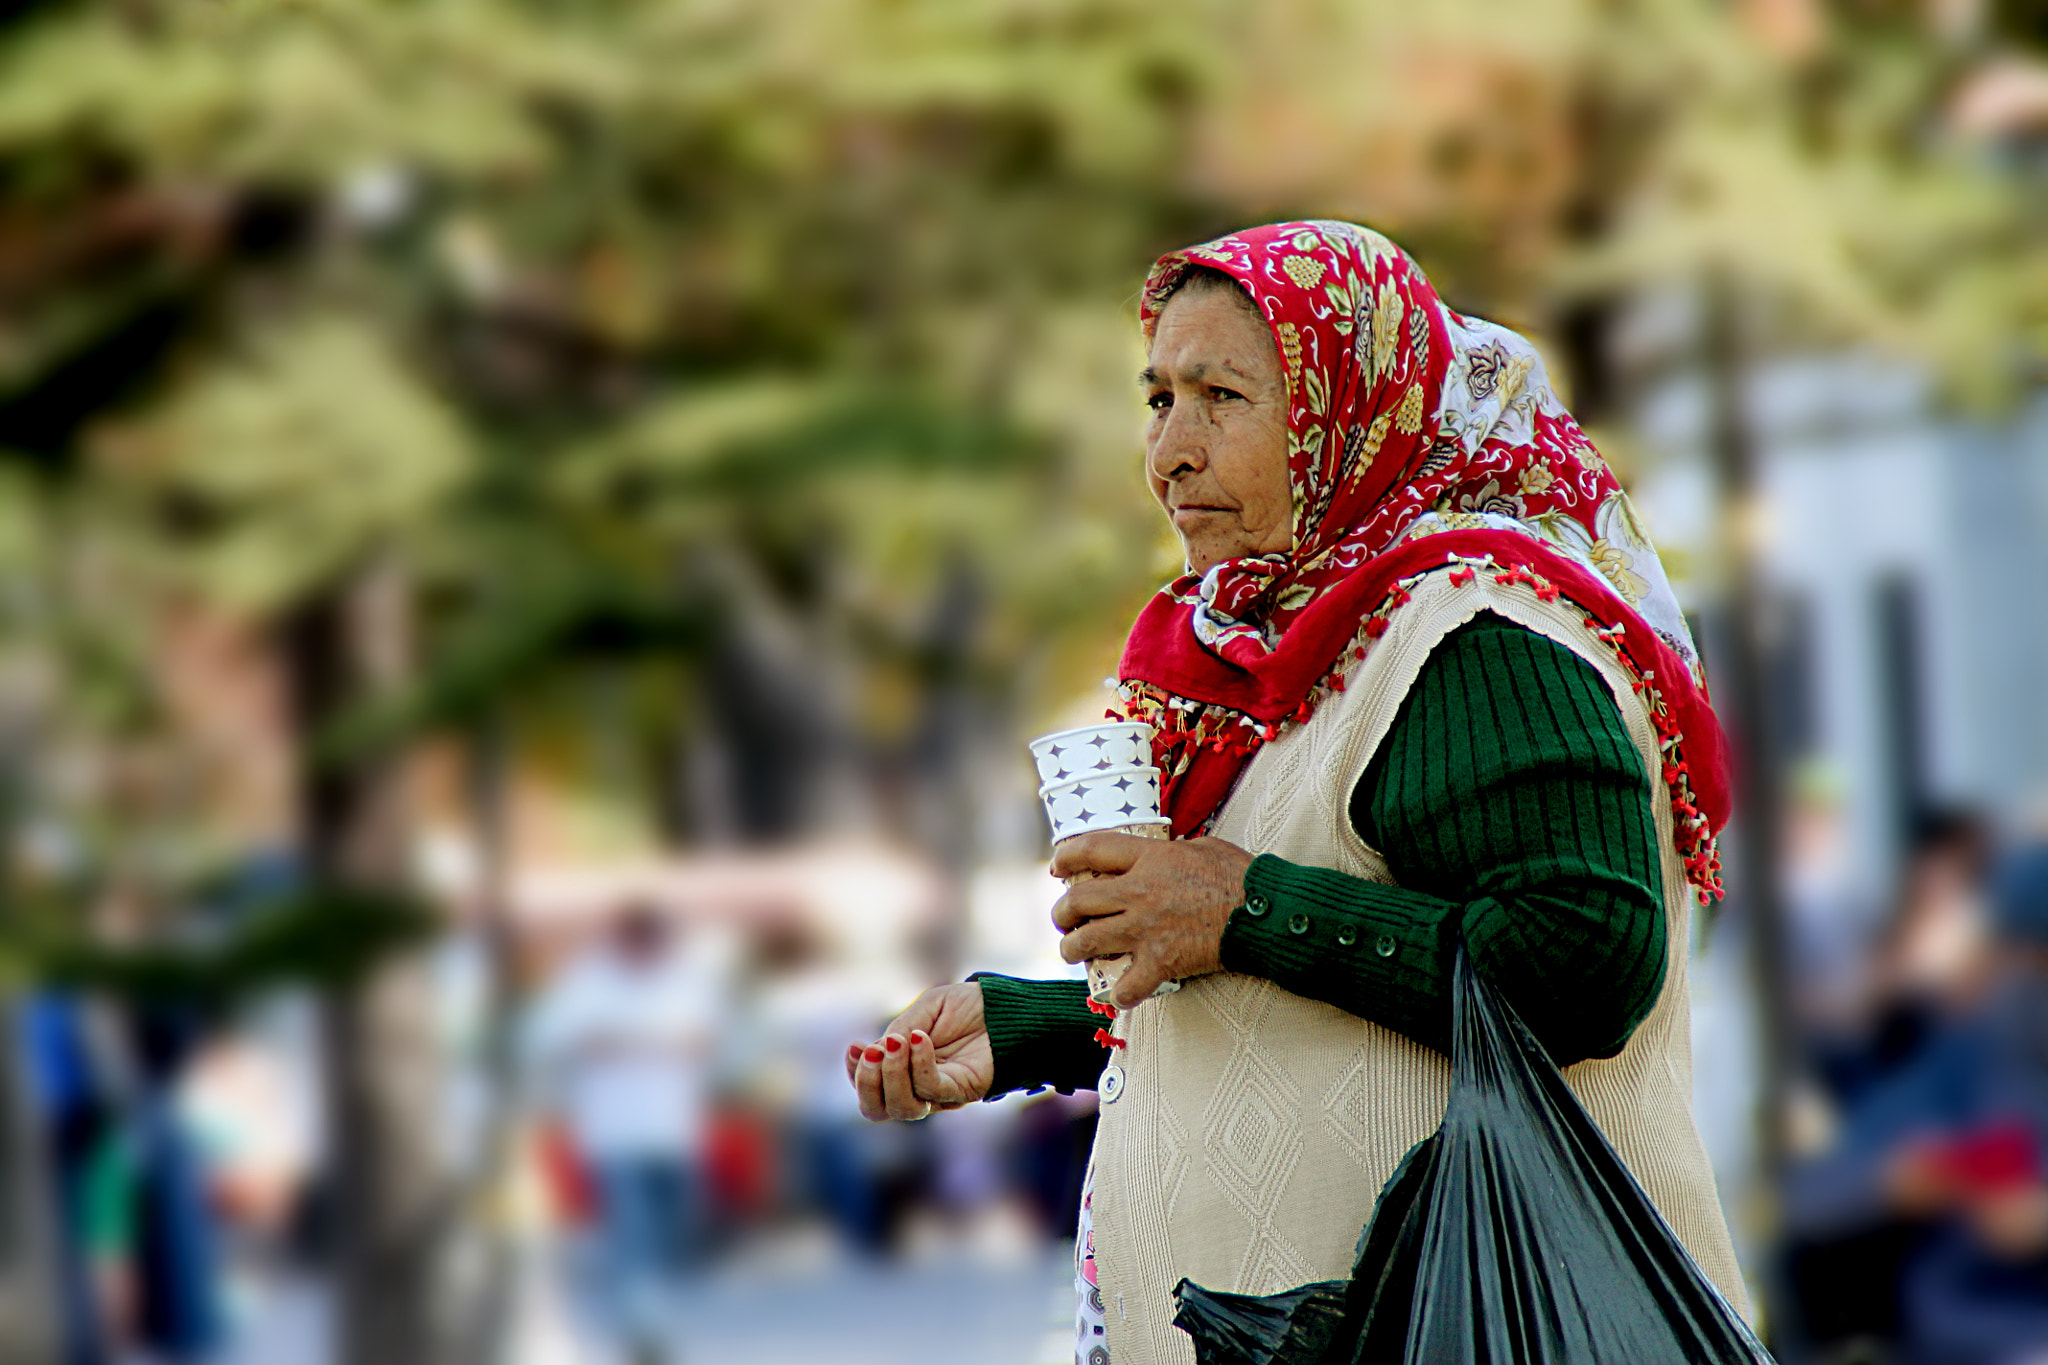 Photograph Woman in Istanbul by Rigo Neumann on 500px